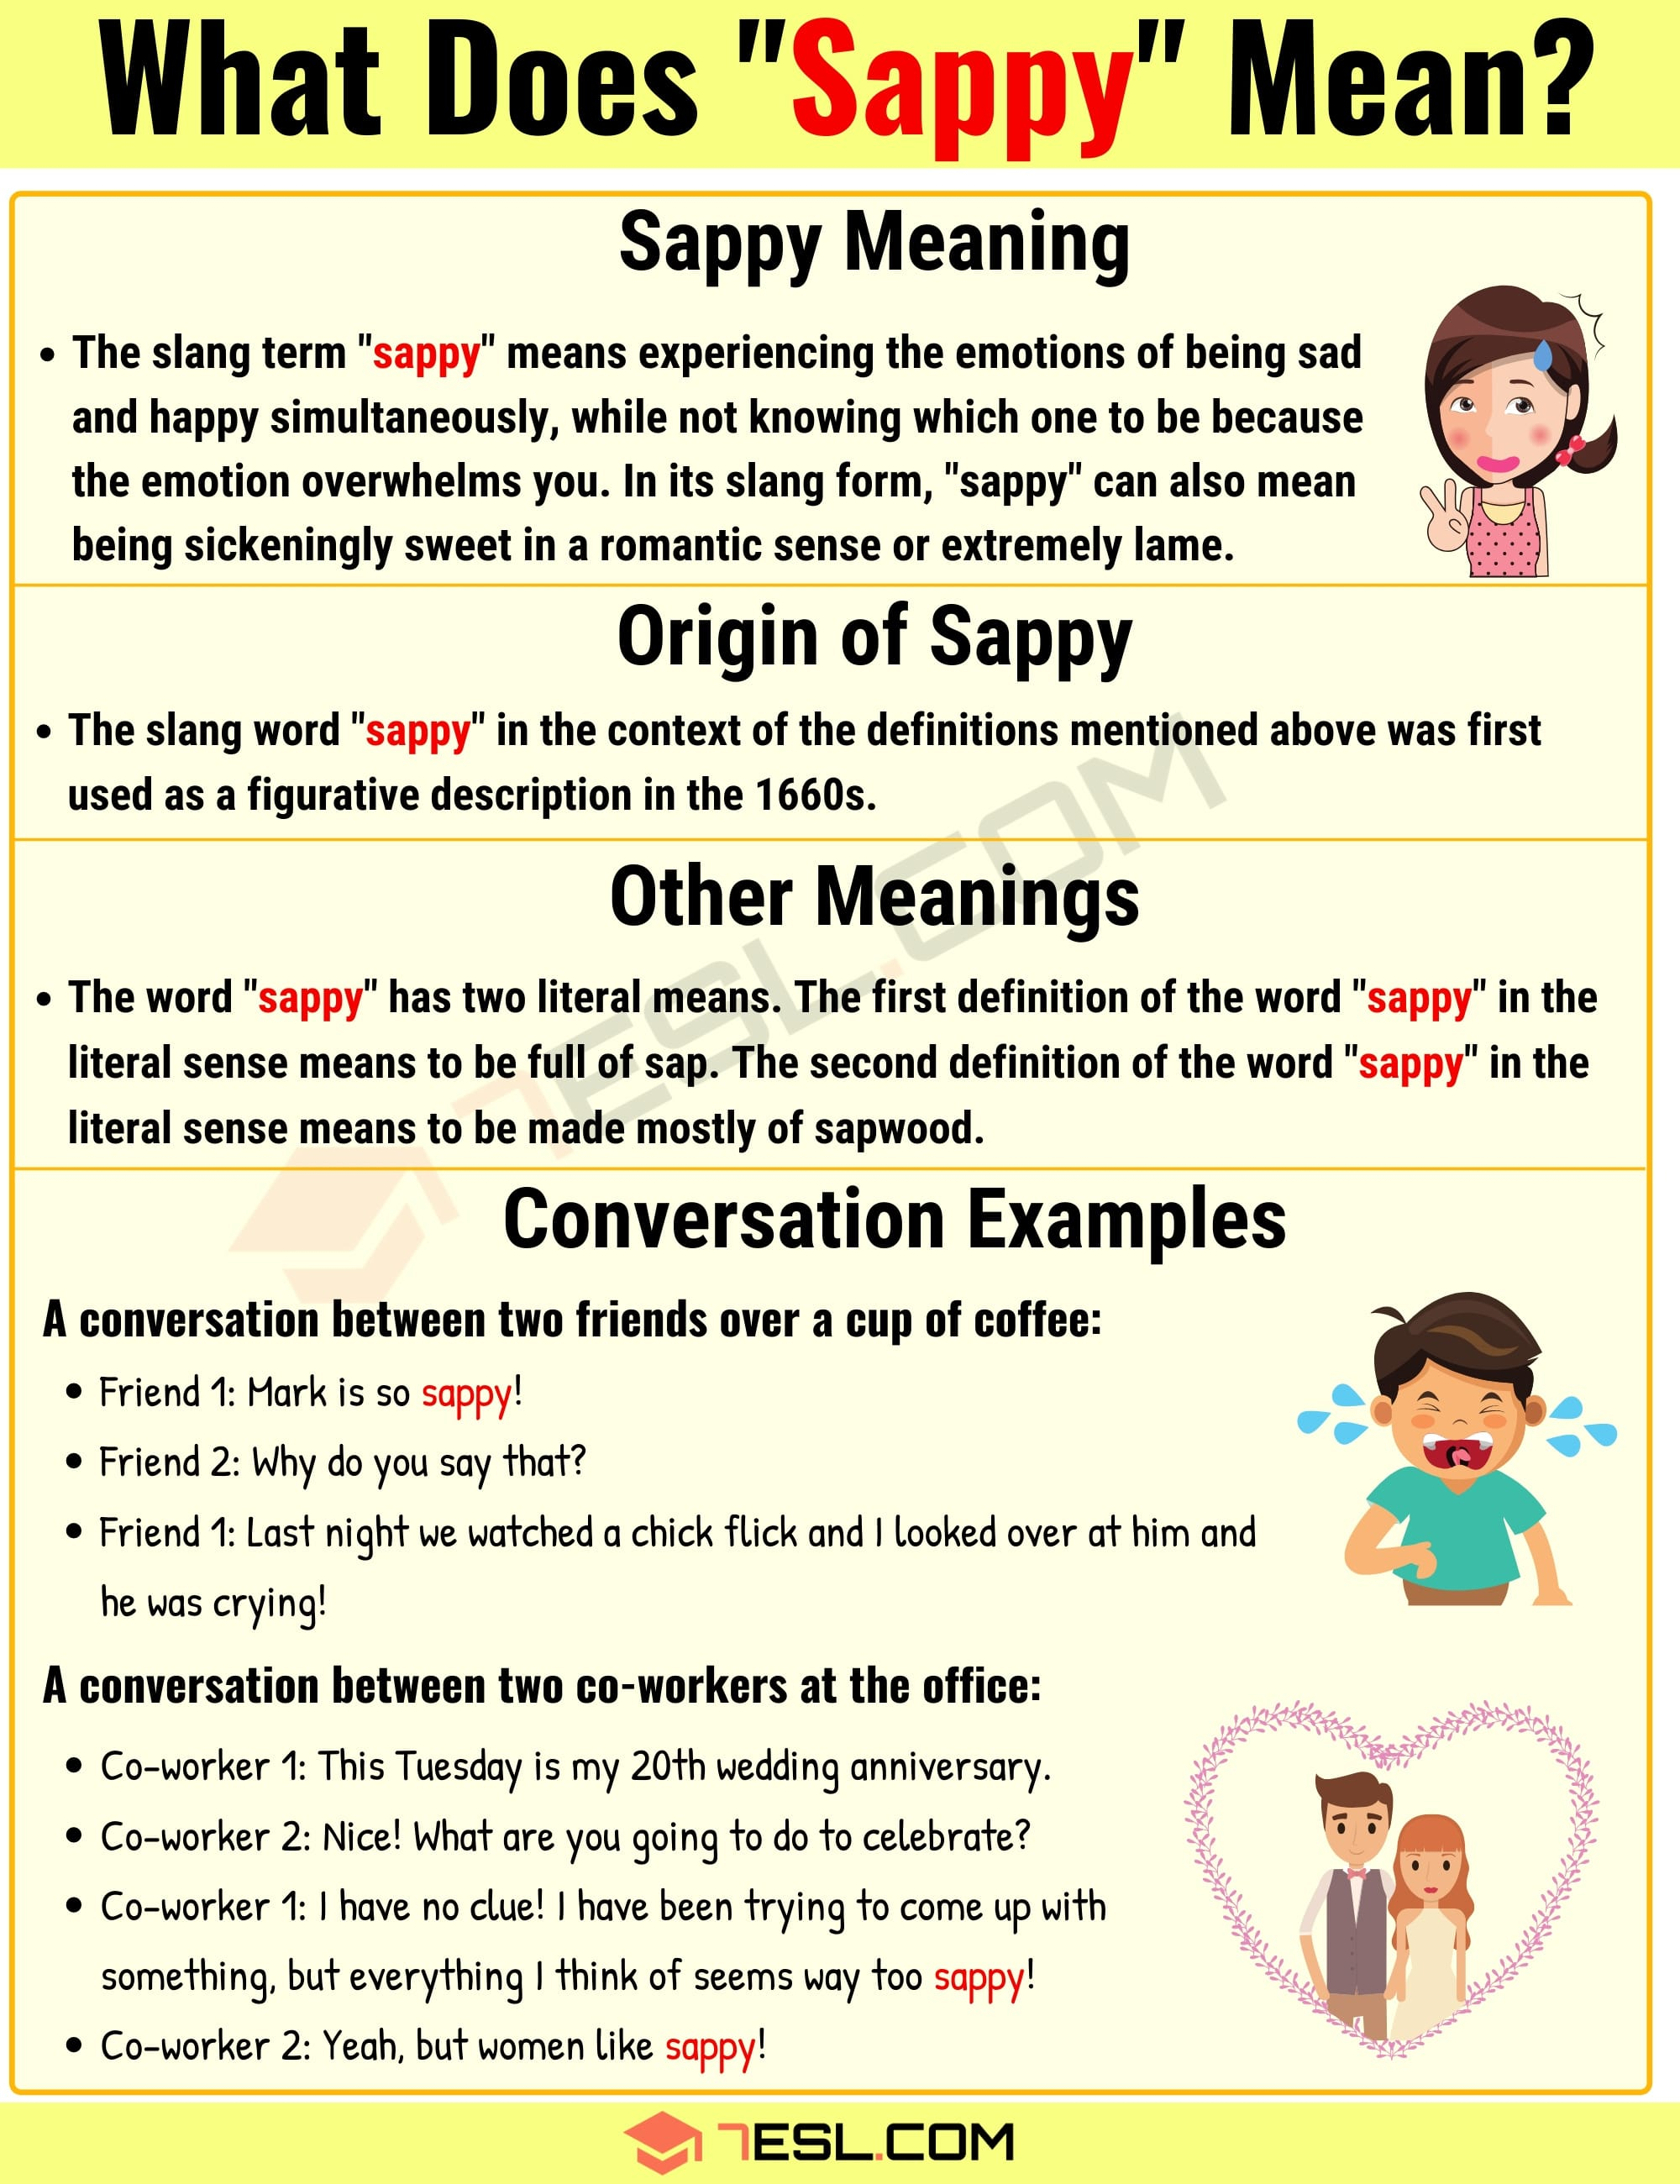 """Sappy Meaning: What Does The Interesting Slang Word """"Sappy"""" Mean? - 7 E S L"""